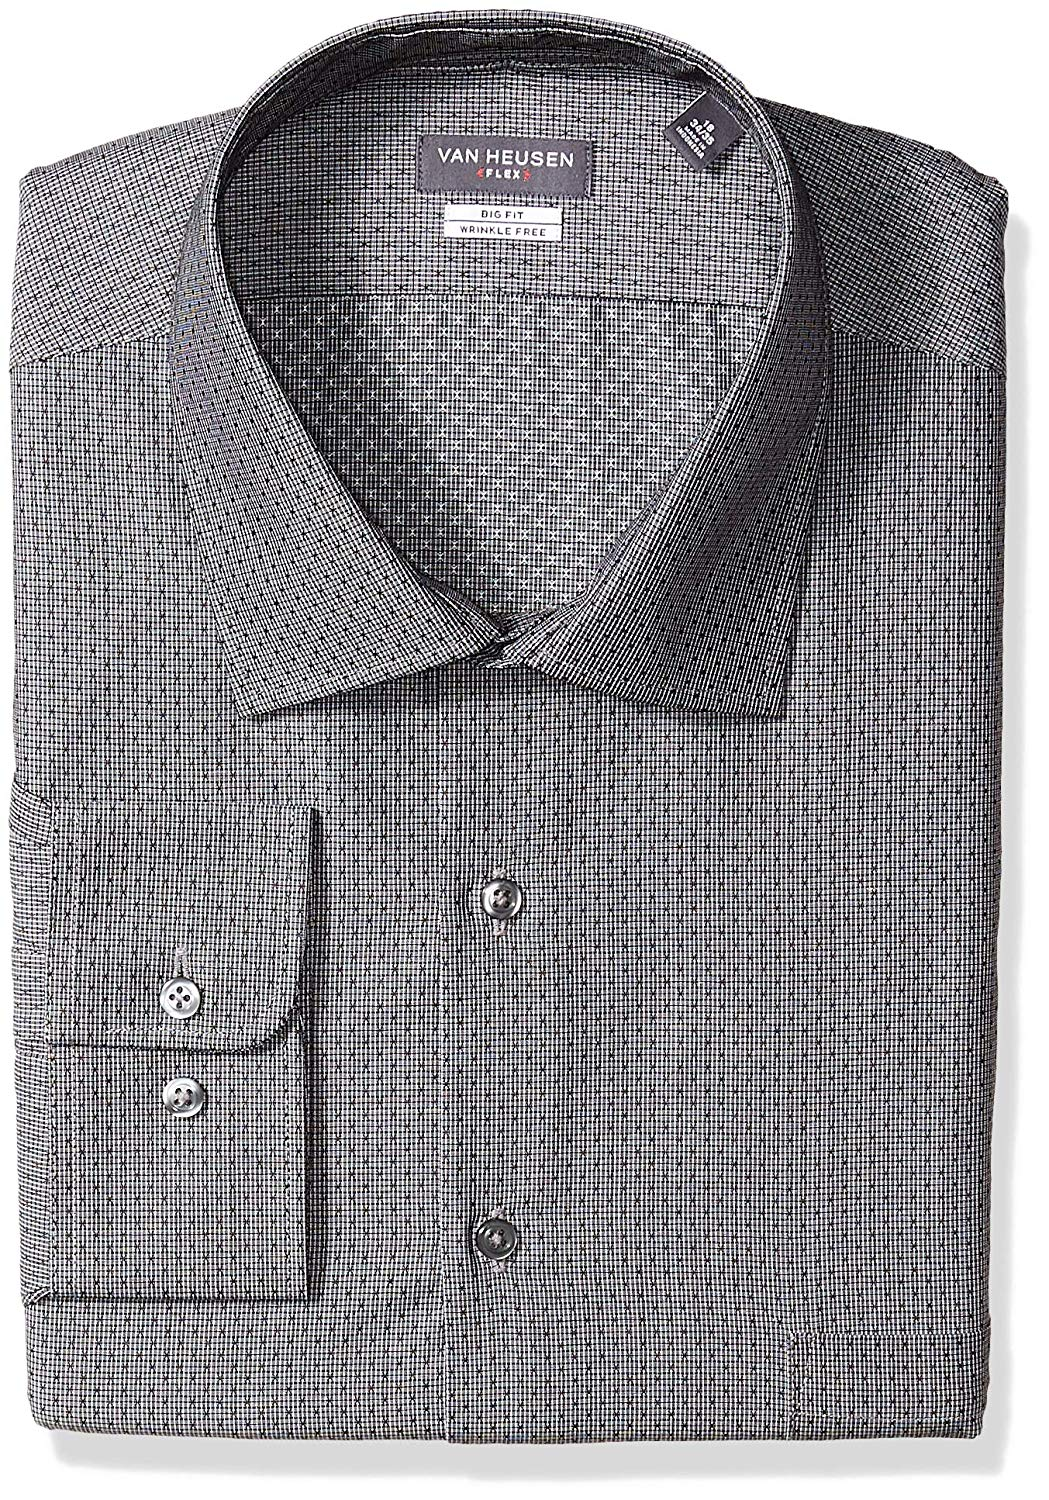 Cheap Van Heusen Fitted Dress Shirts Find Van Heusen Fitted Dress